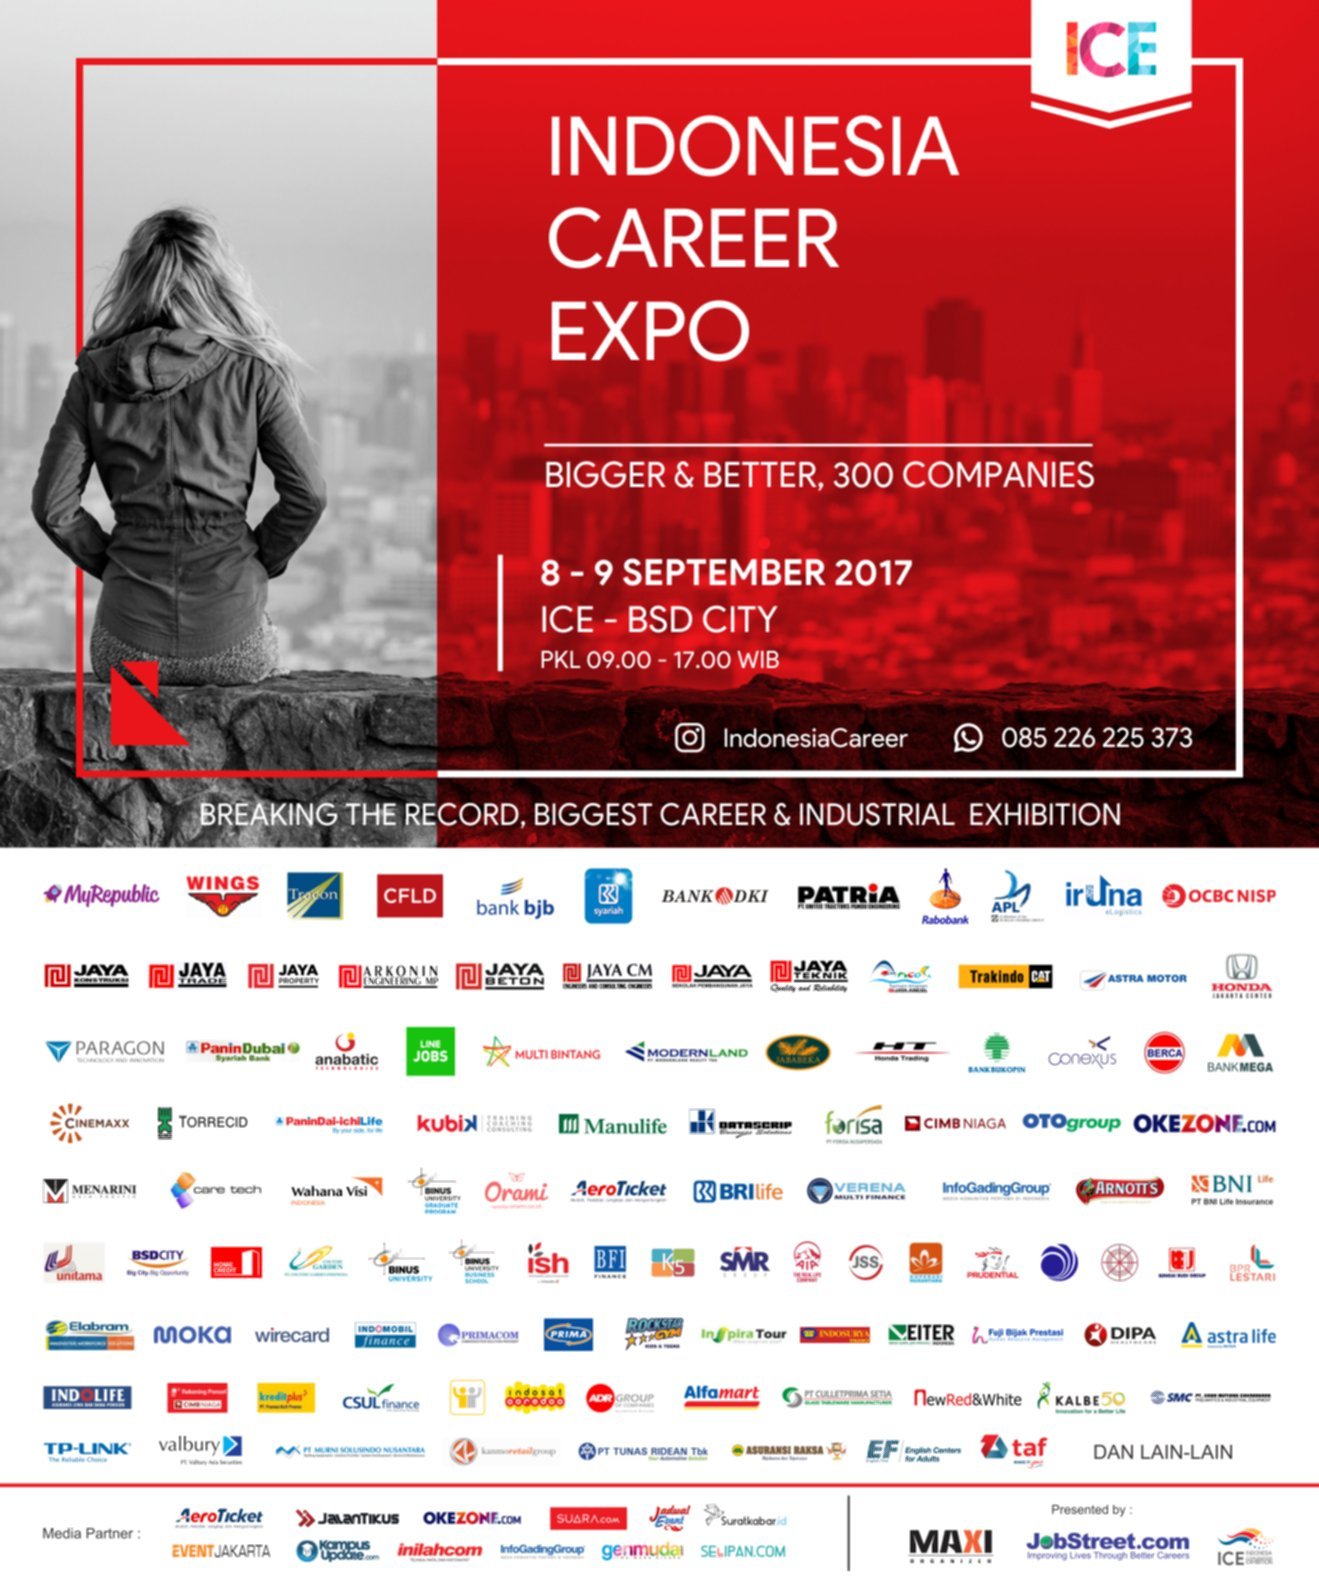 Jobfair Indonesia Career Expo 8-9 September 2017